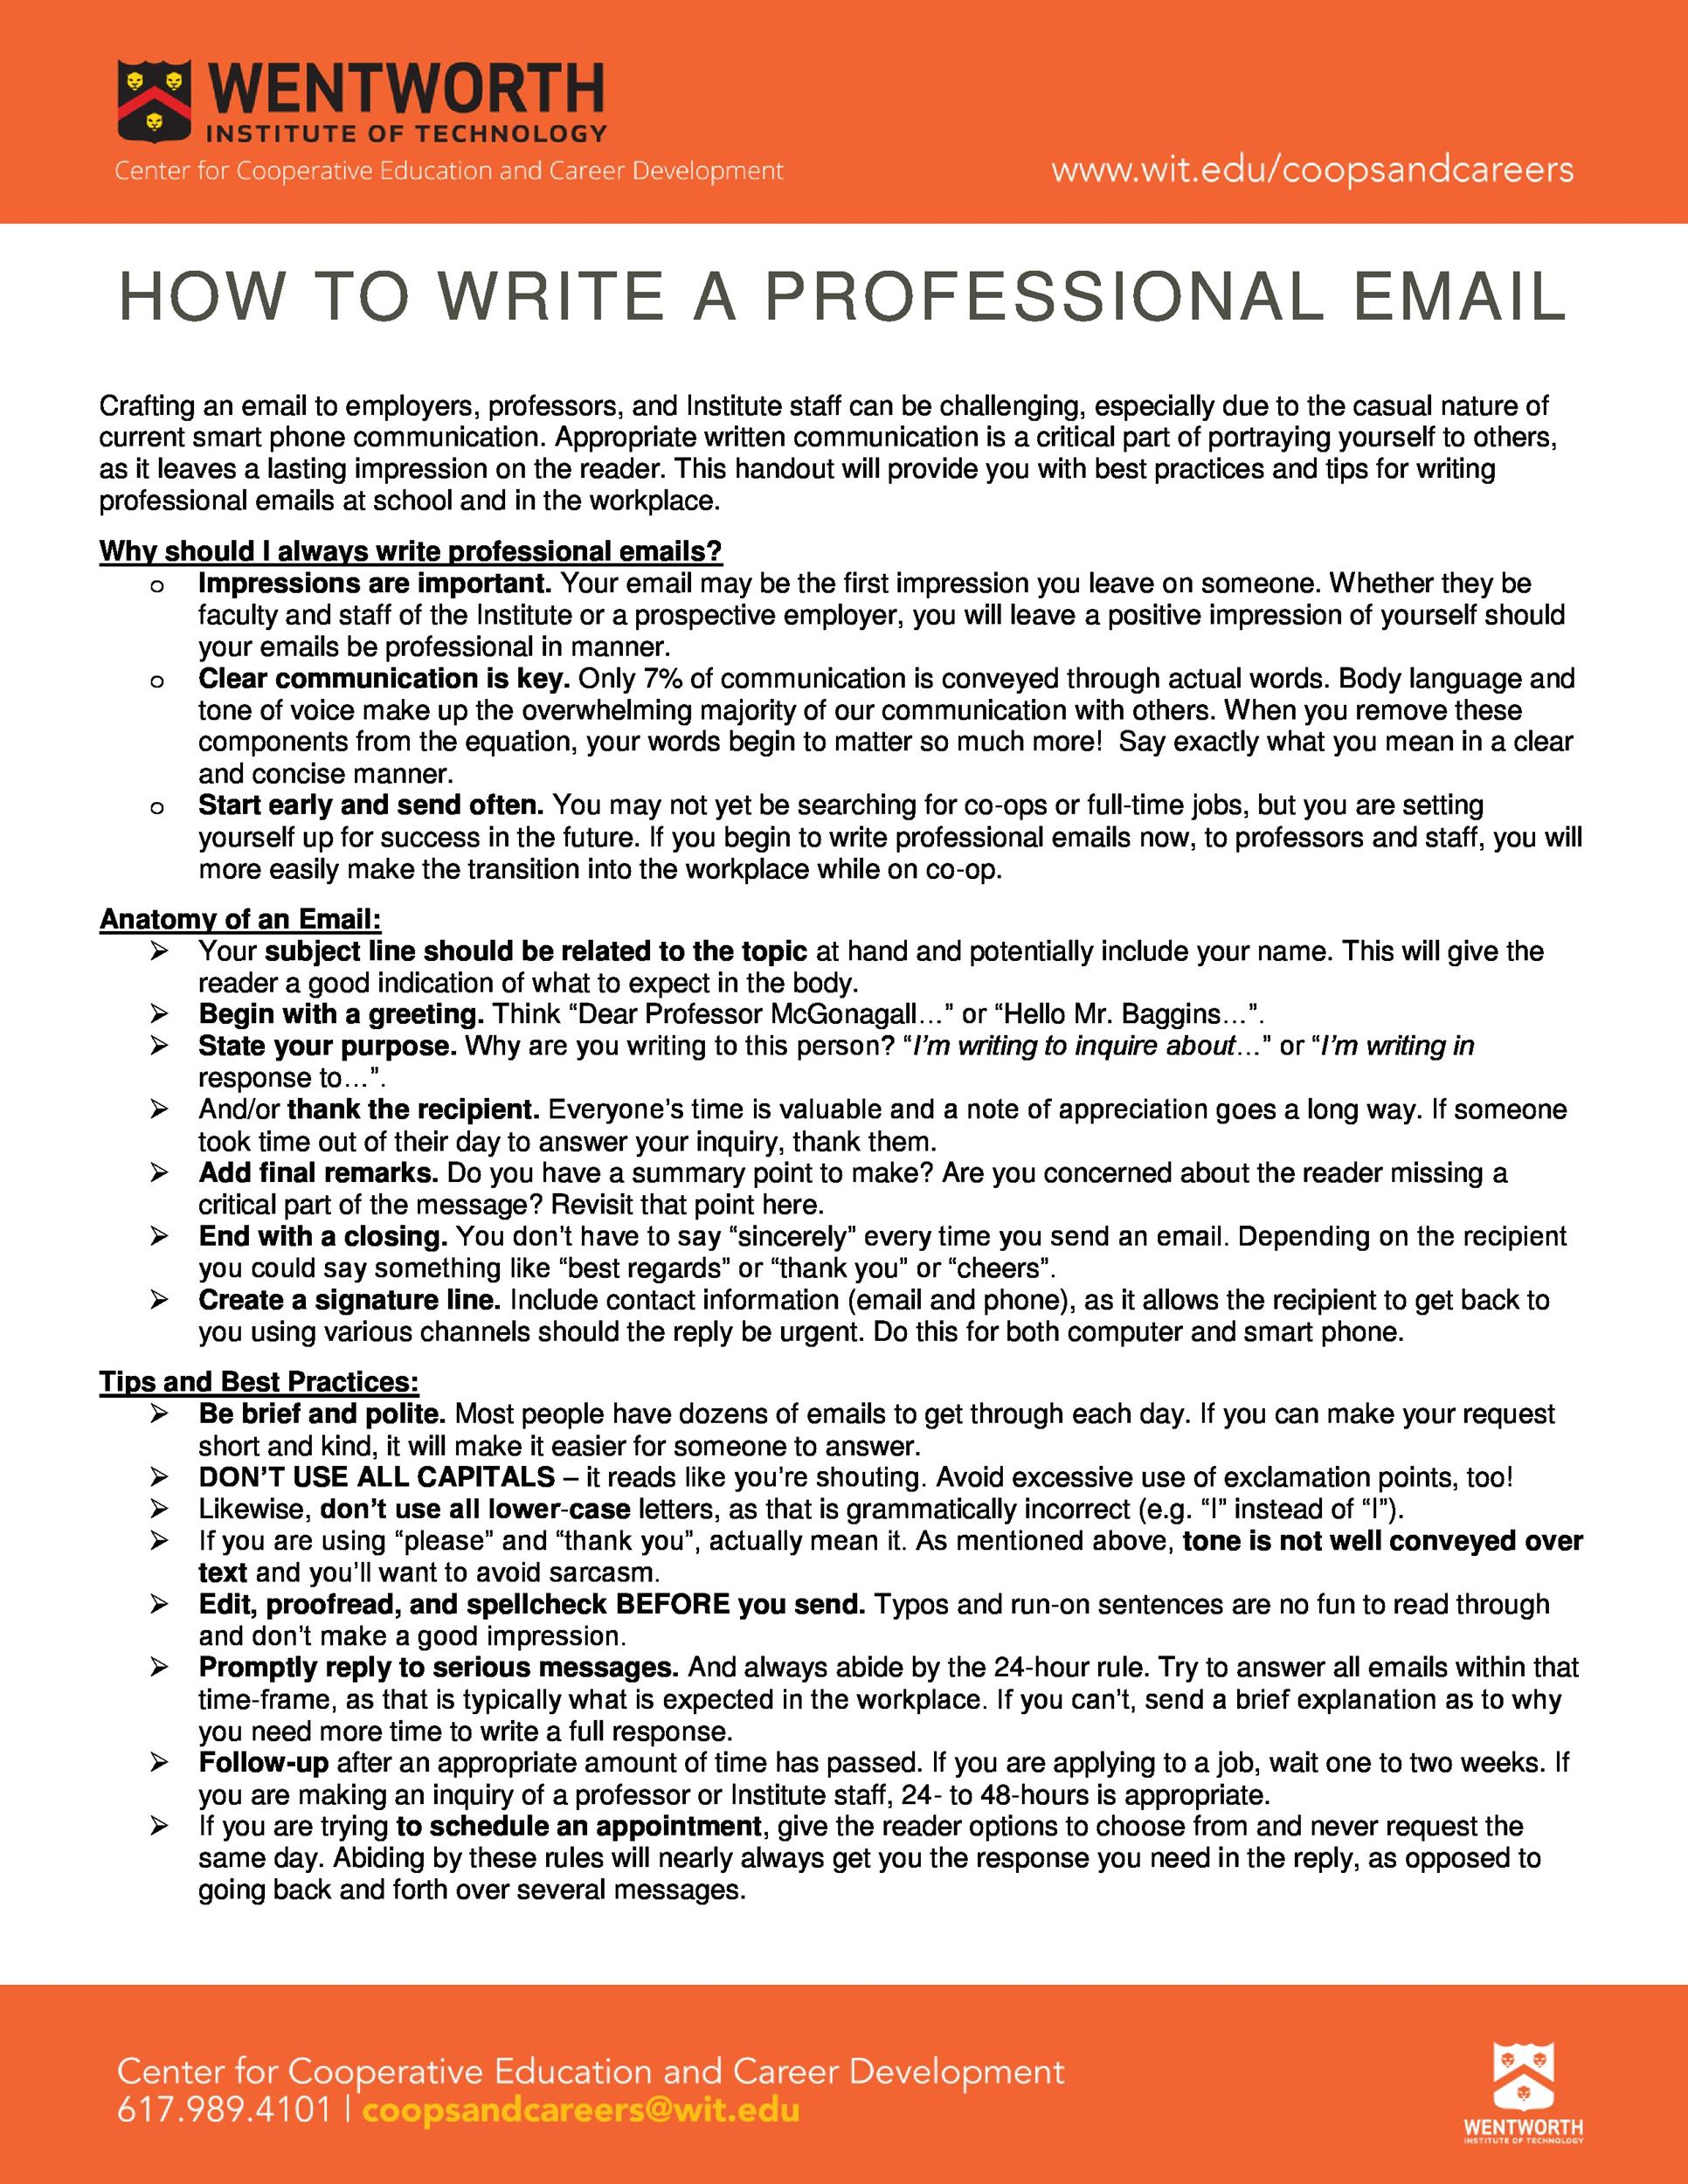 how to write a professional email examples